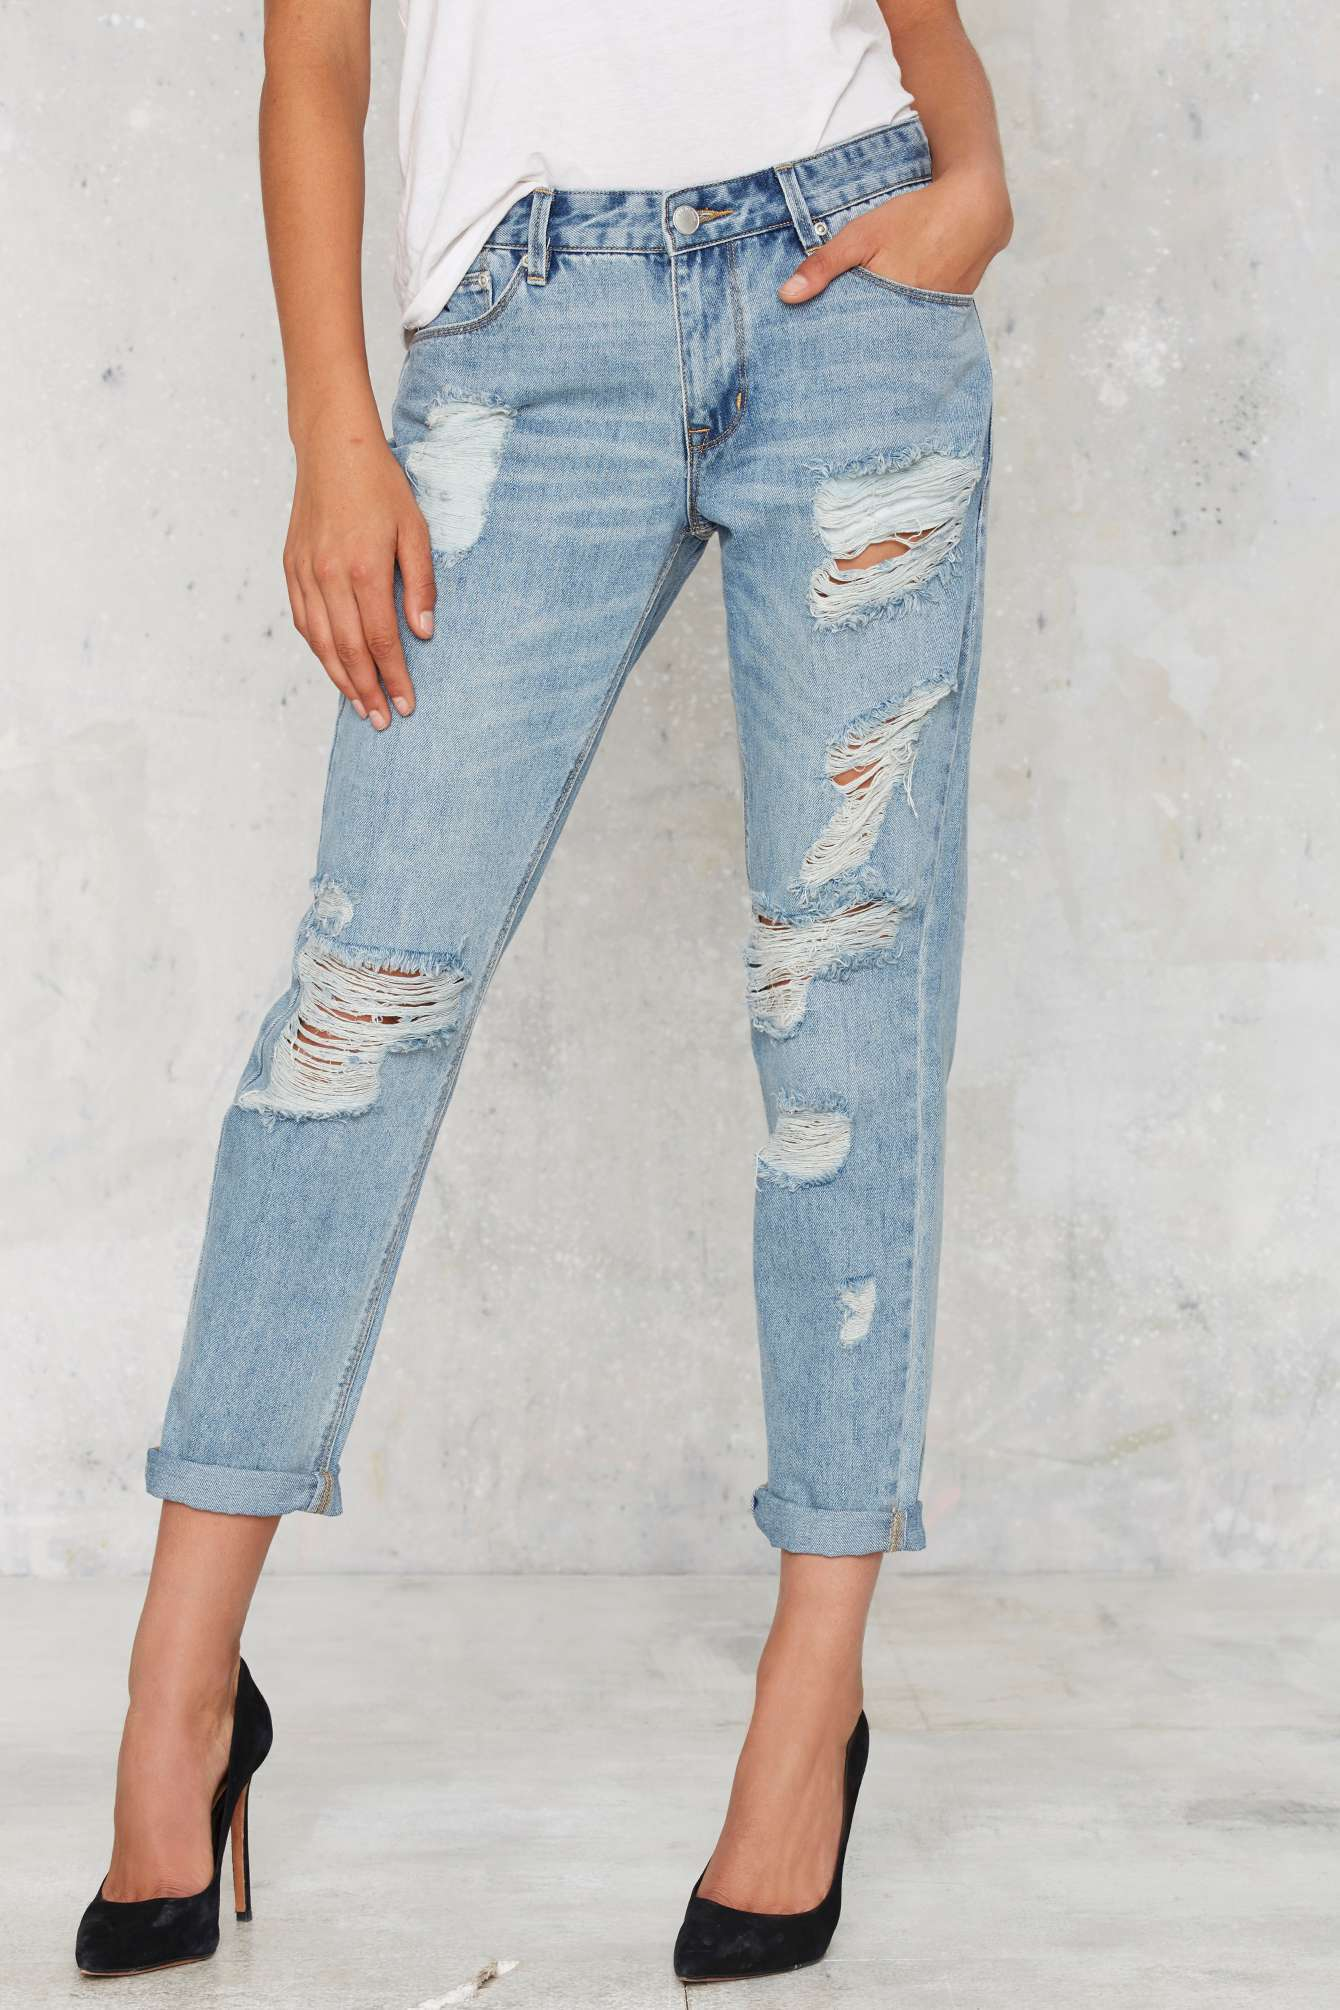 NASTY GAL - CLICK IMAGE TO SHOP